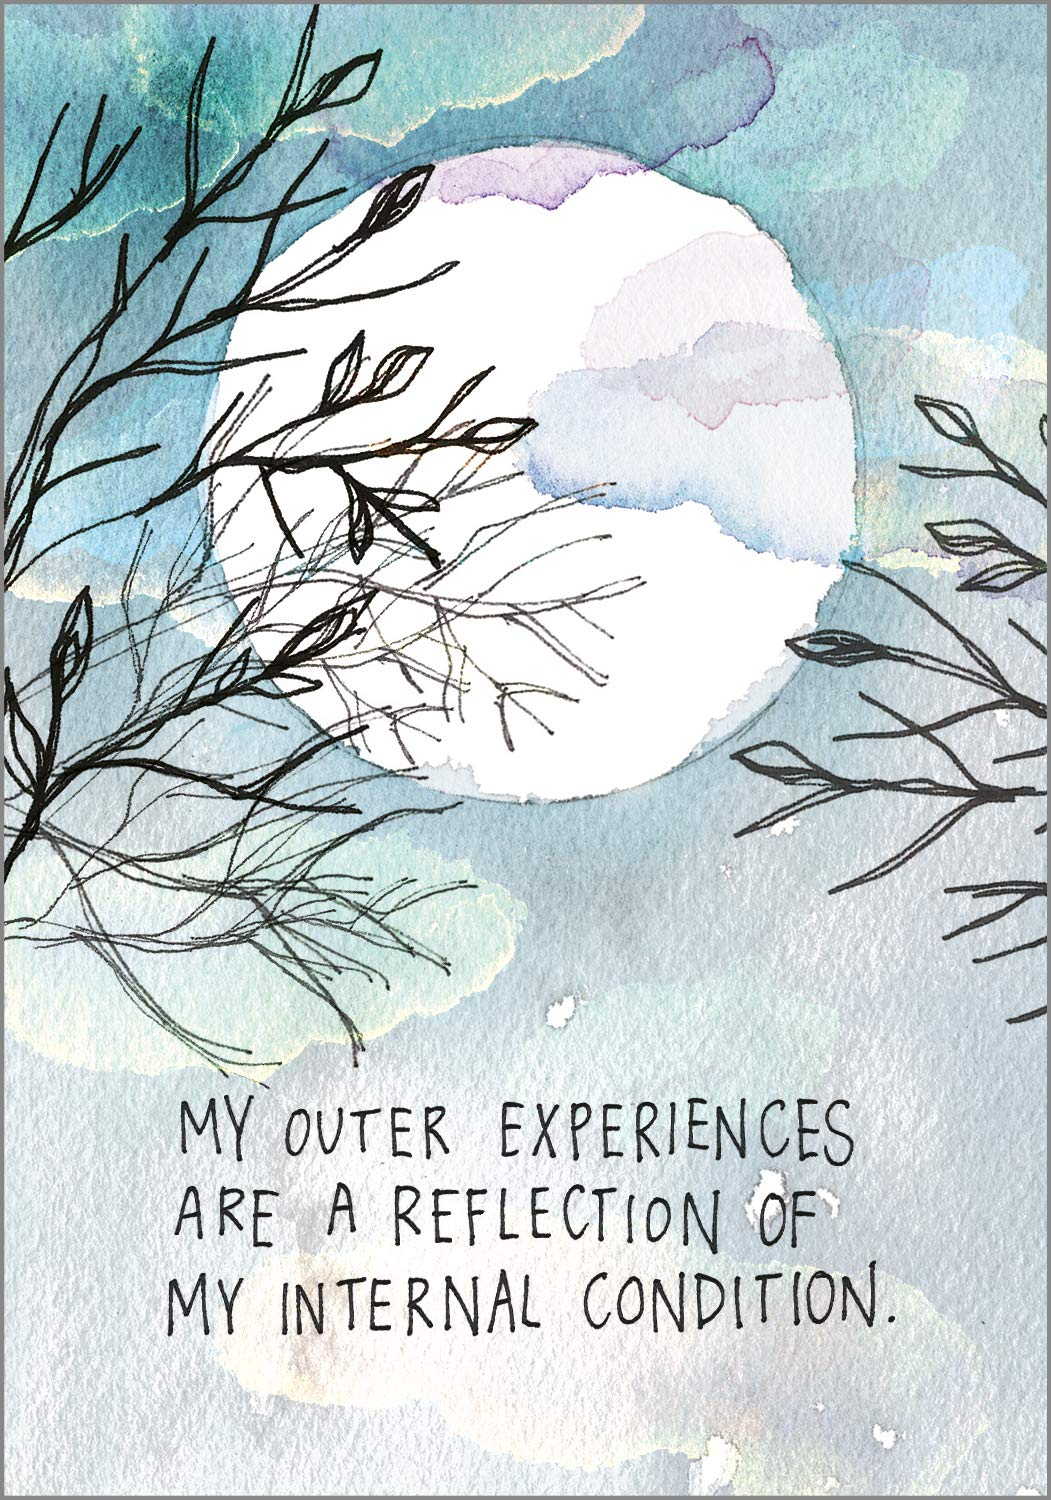 My outer experiences are a reflection of my internal condition. COME DISCOVER more inspiring words of wisdom, encouraging quotes, and affirmations on Hello Lovely Studio.